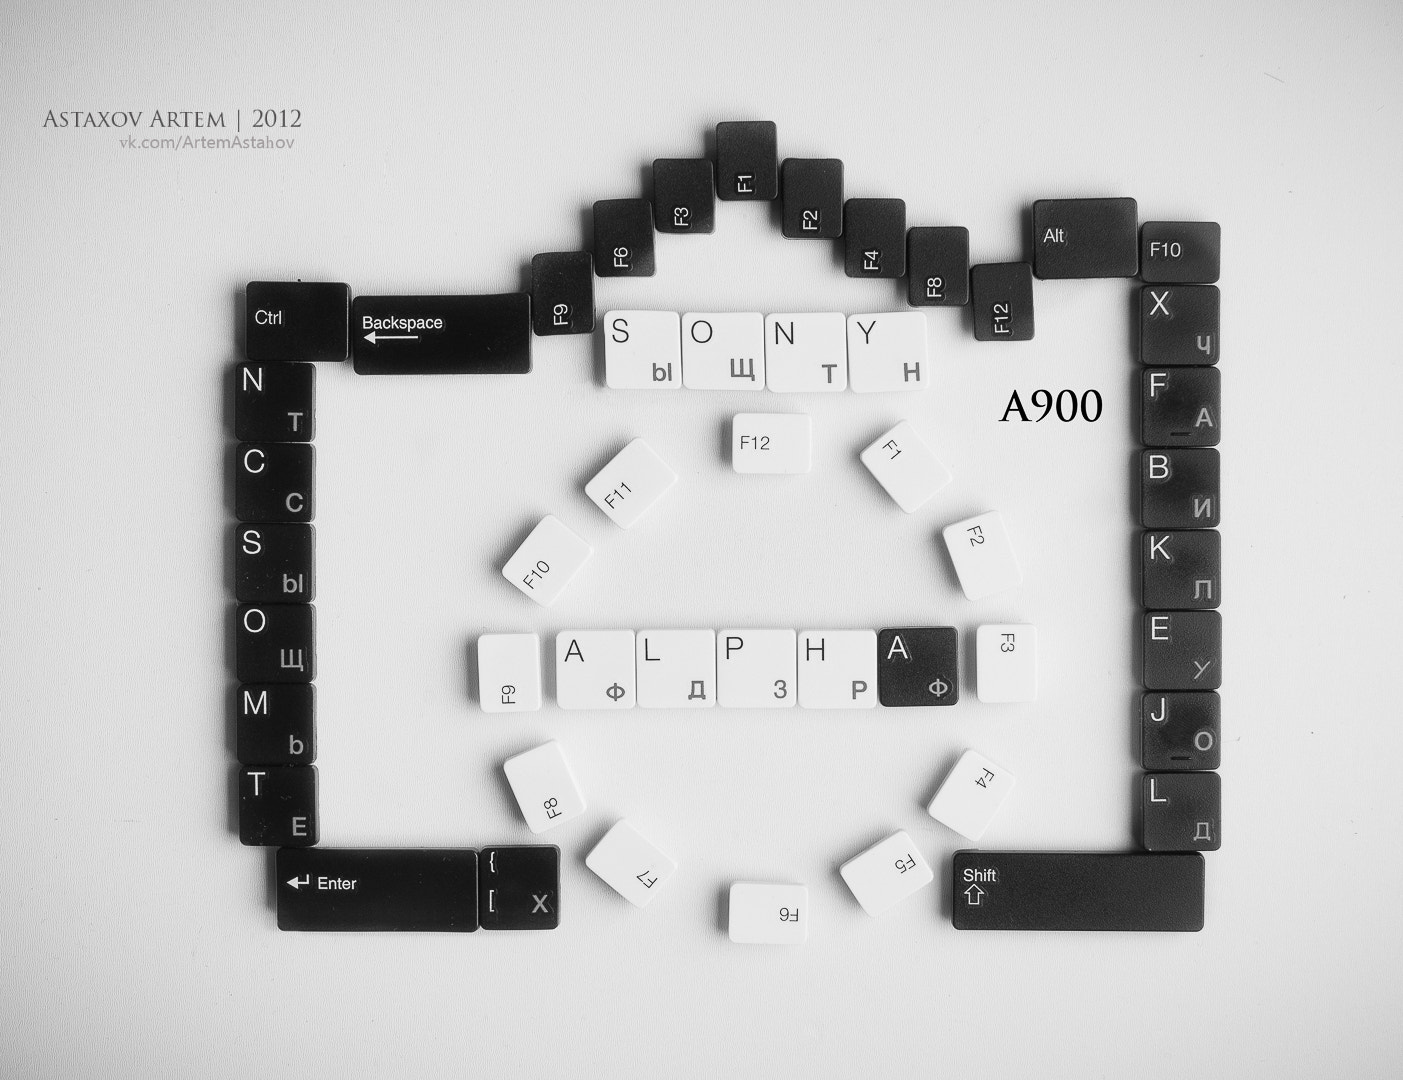 Photograph Sony Alpha A900 of keys by Артем Астахов on 500px